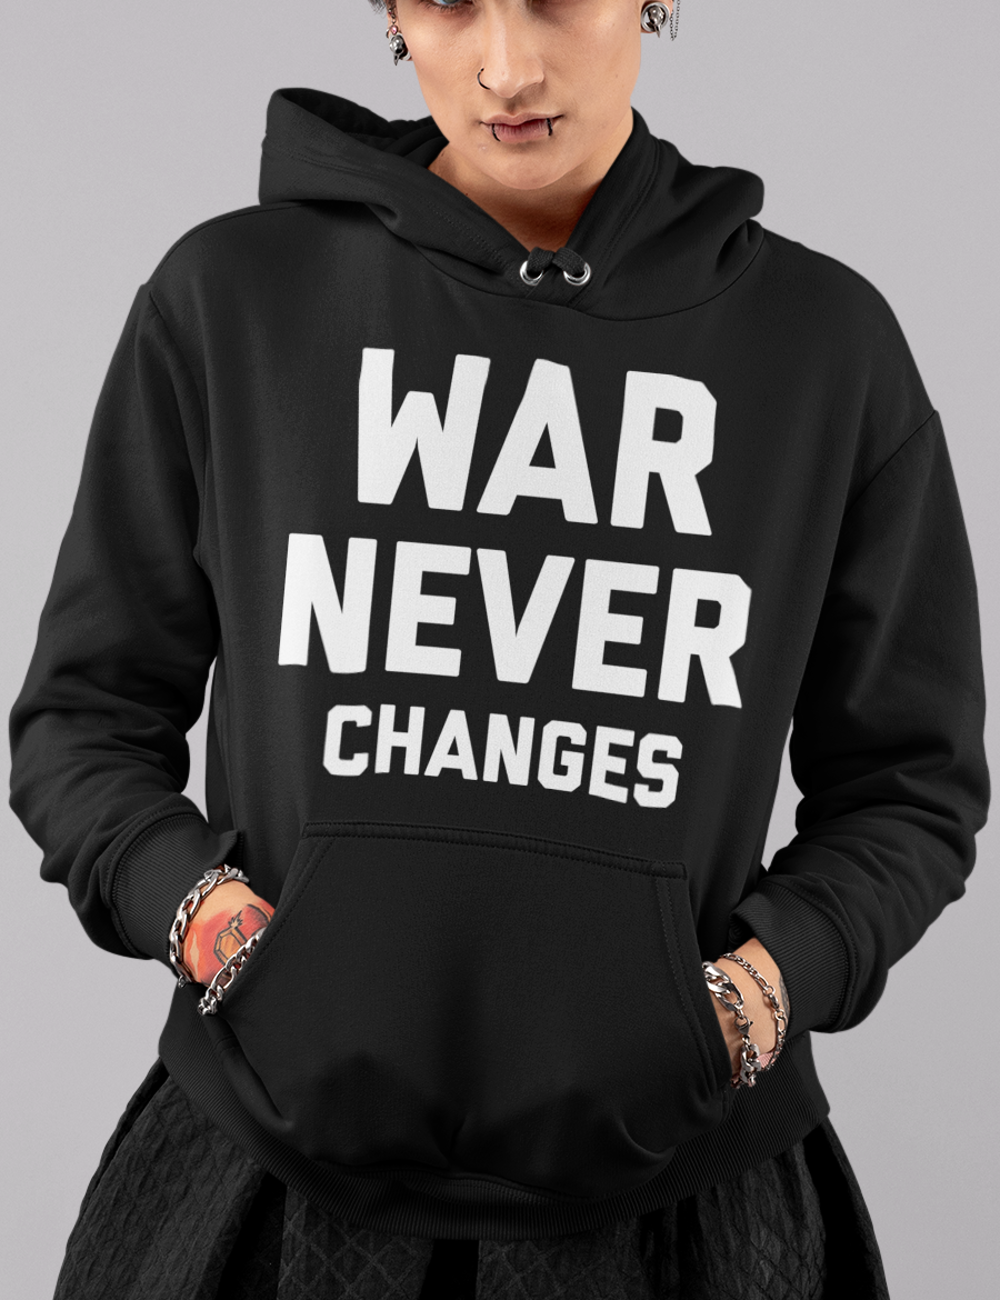 War Never Changes | Premium Hoodie